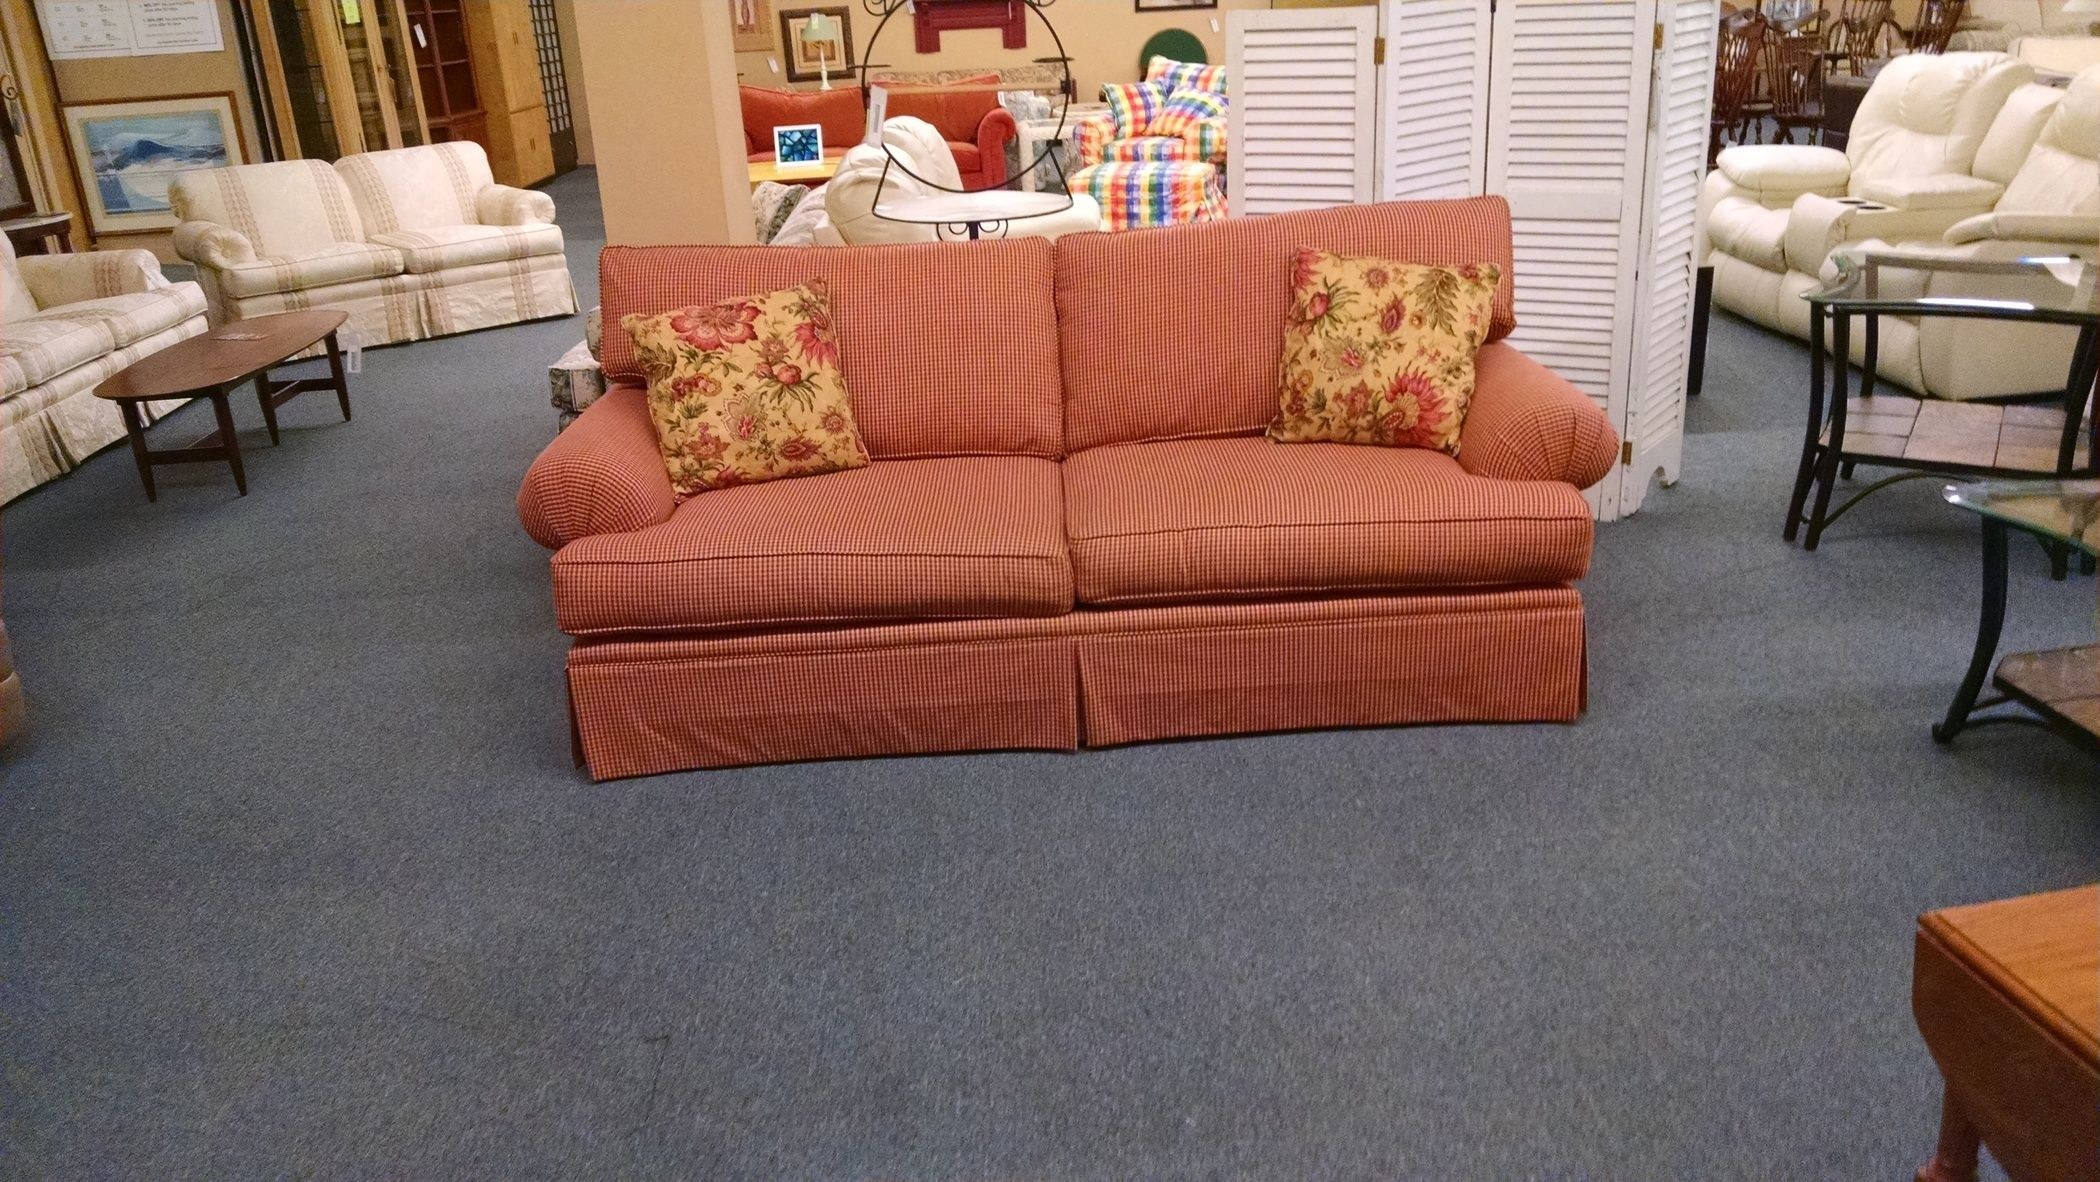 CRAFTMASTER CHECKERED SOFA | Delmarva Furniture Consignment